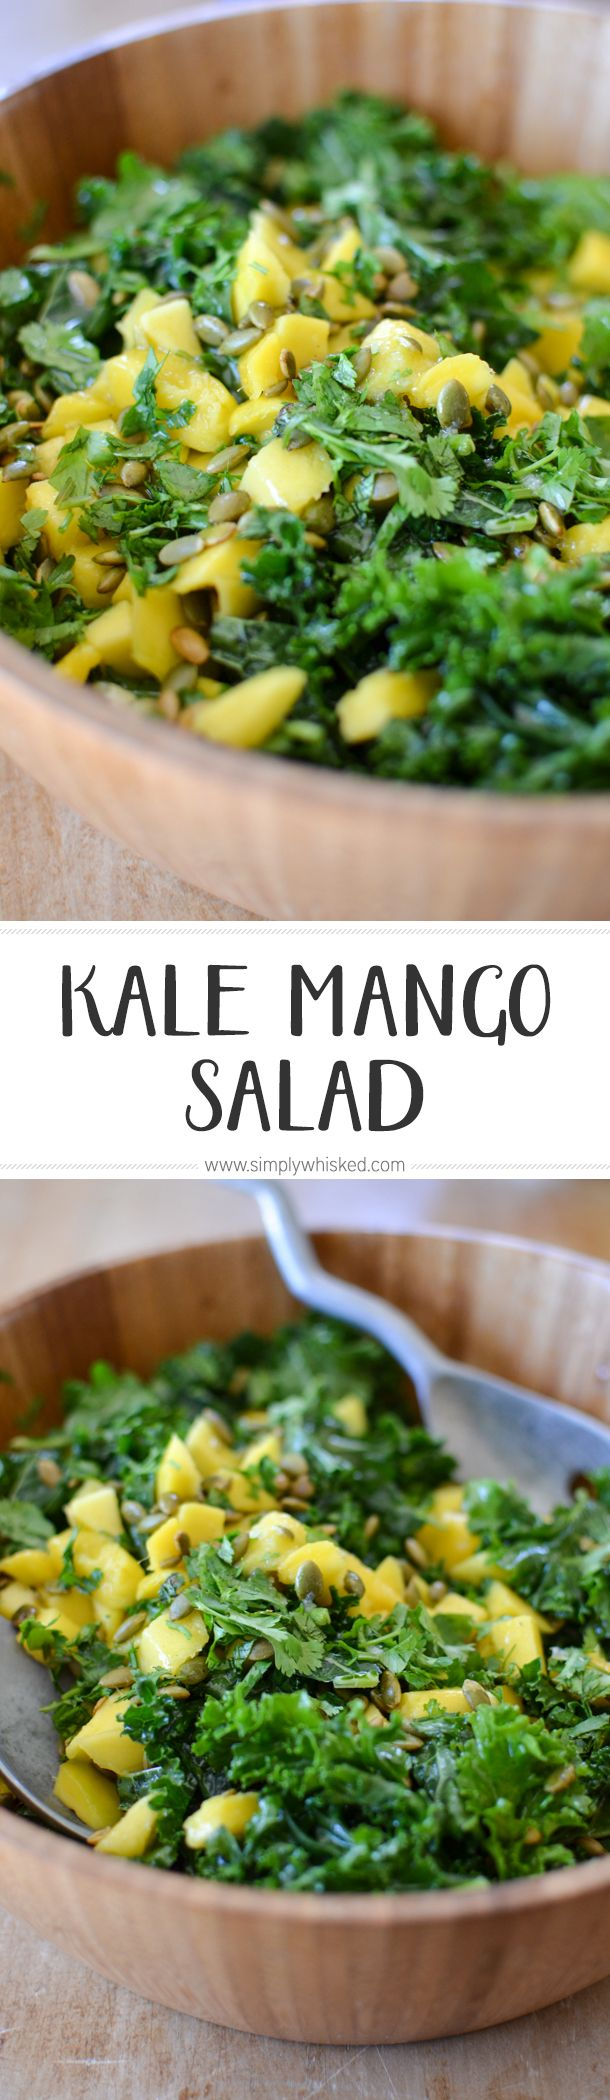 Kale Mango Salad | This is seriously the best kale salad ever!